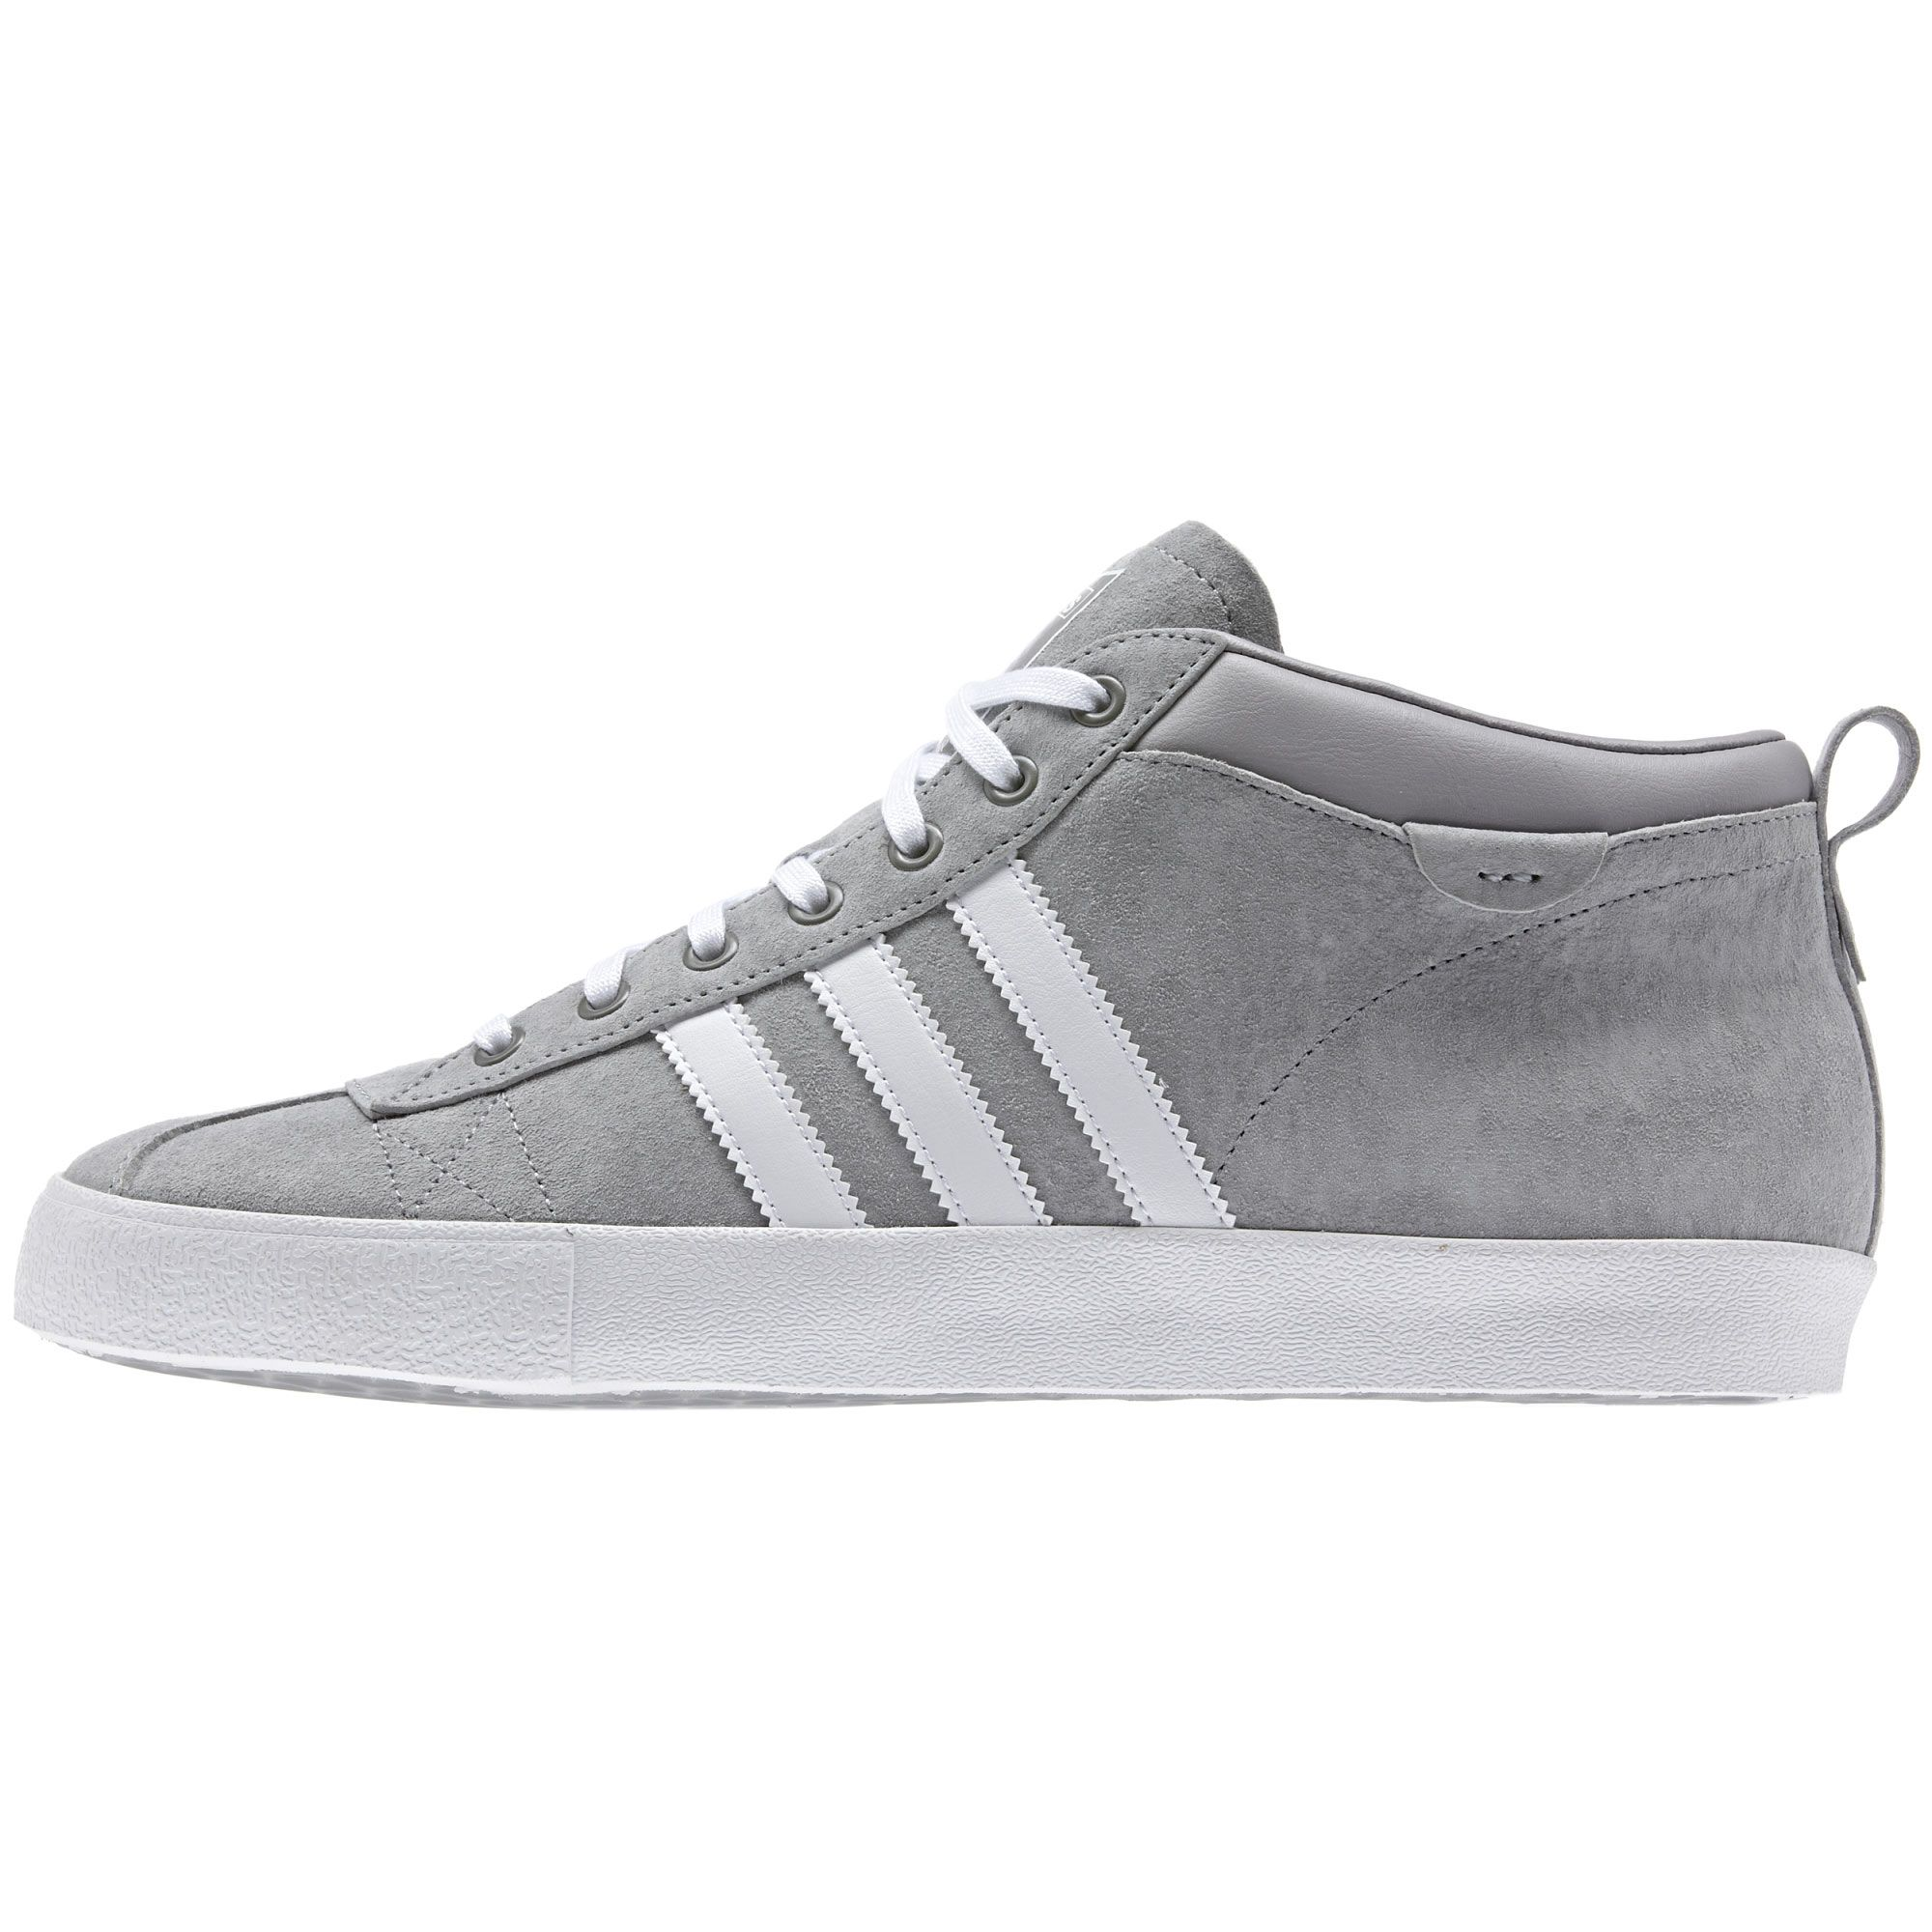 mens shoes adidas gazelle nz